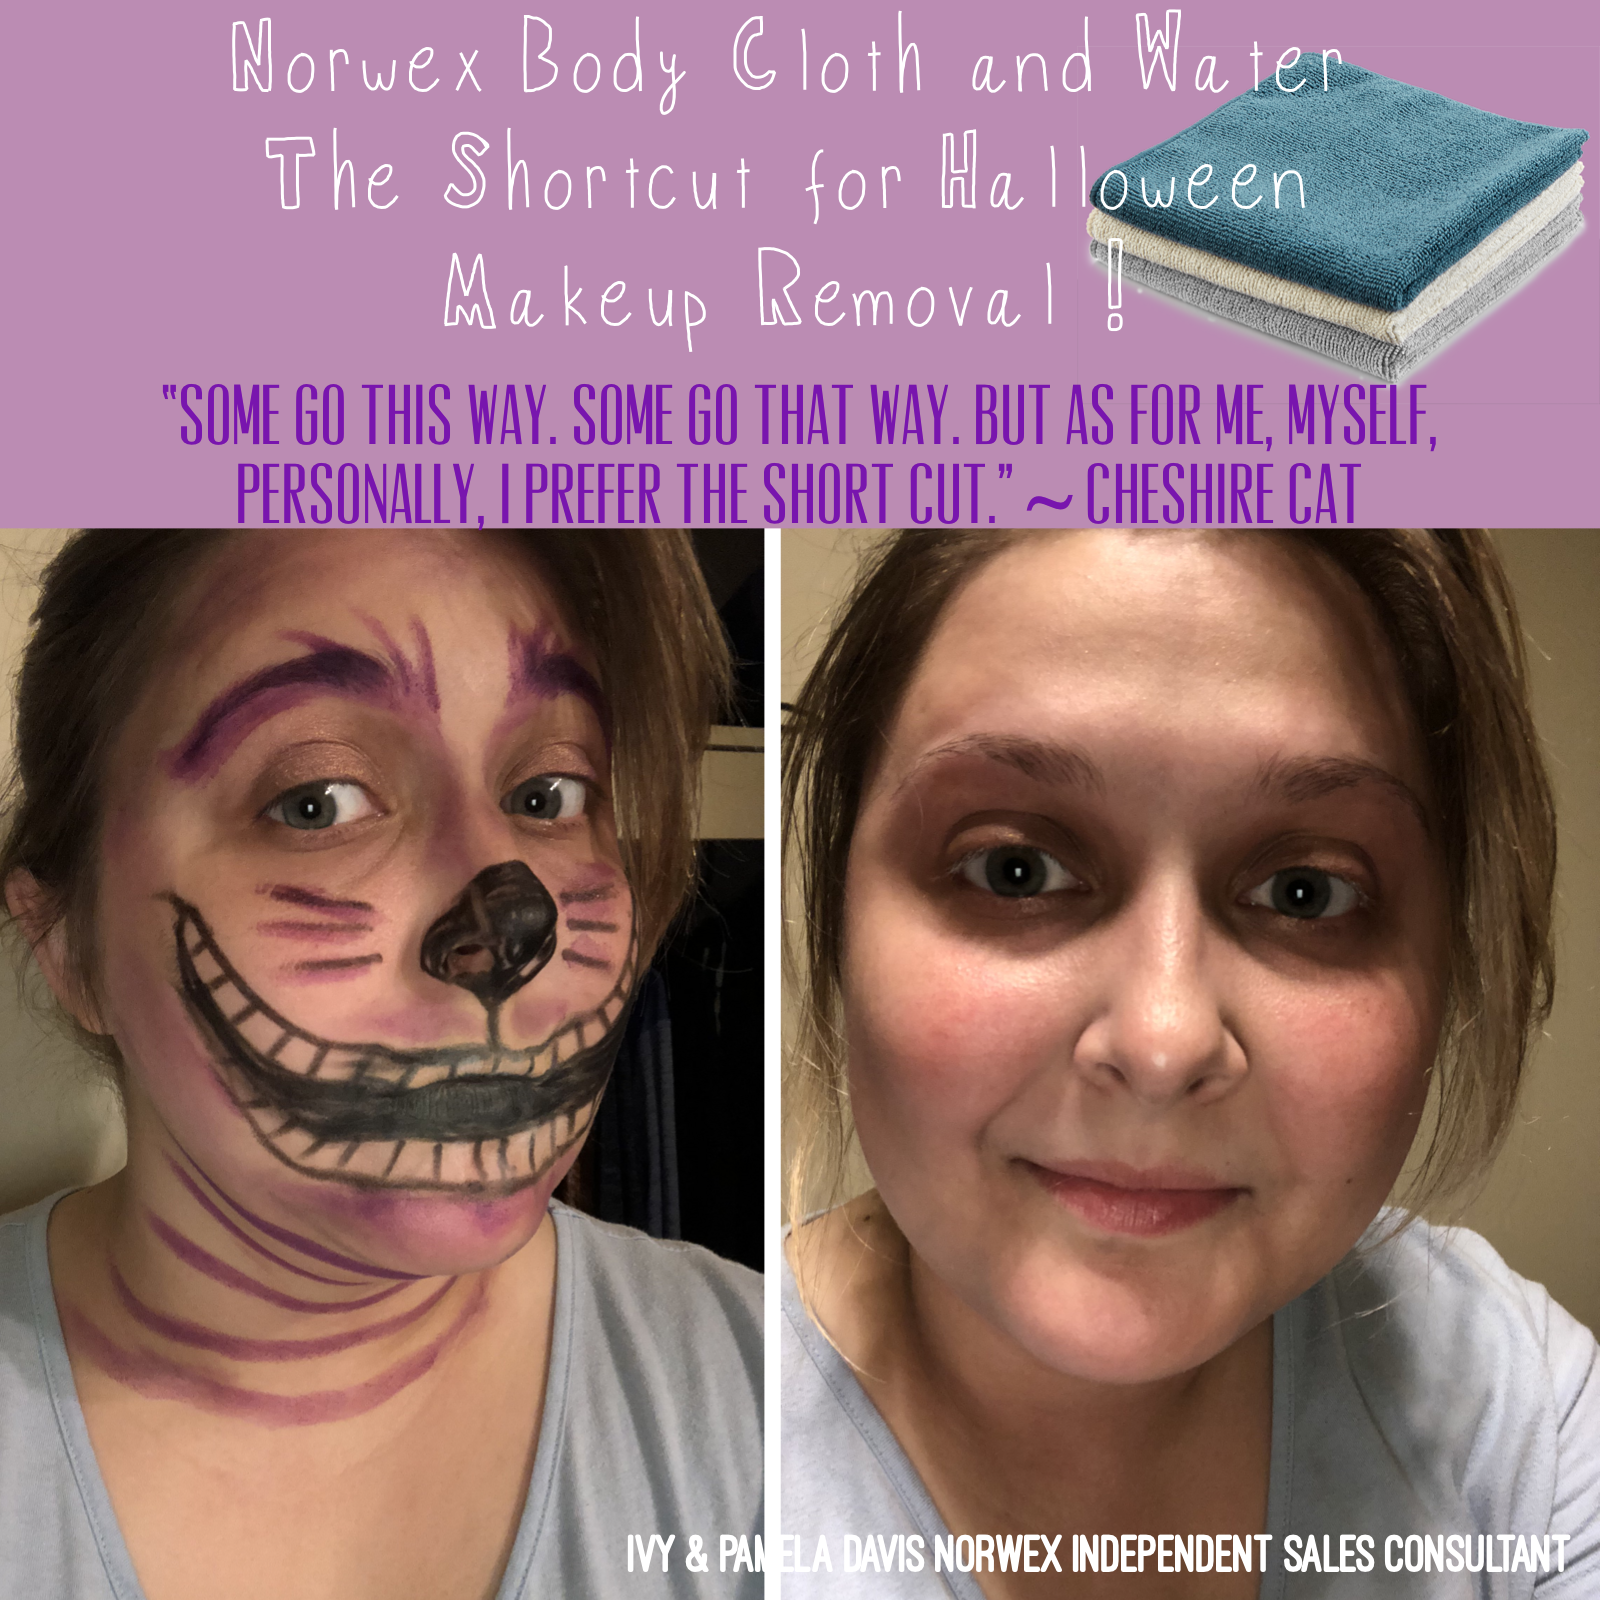 Make up removal shortcut. Water and a Norwex body cloth